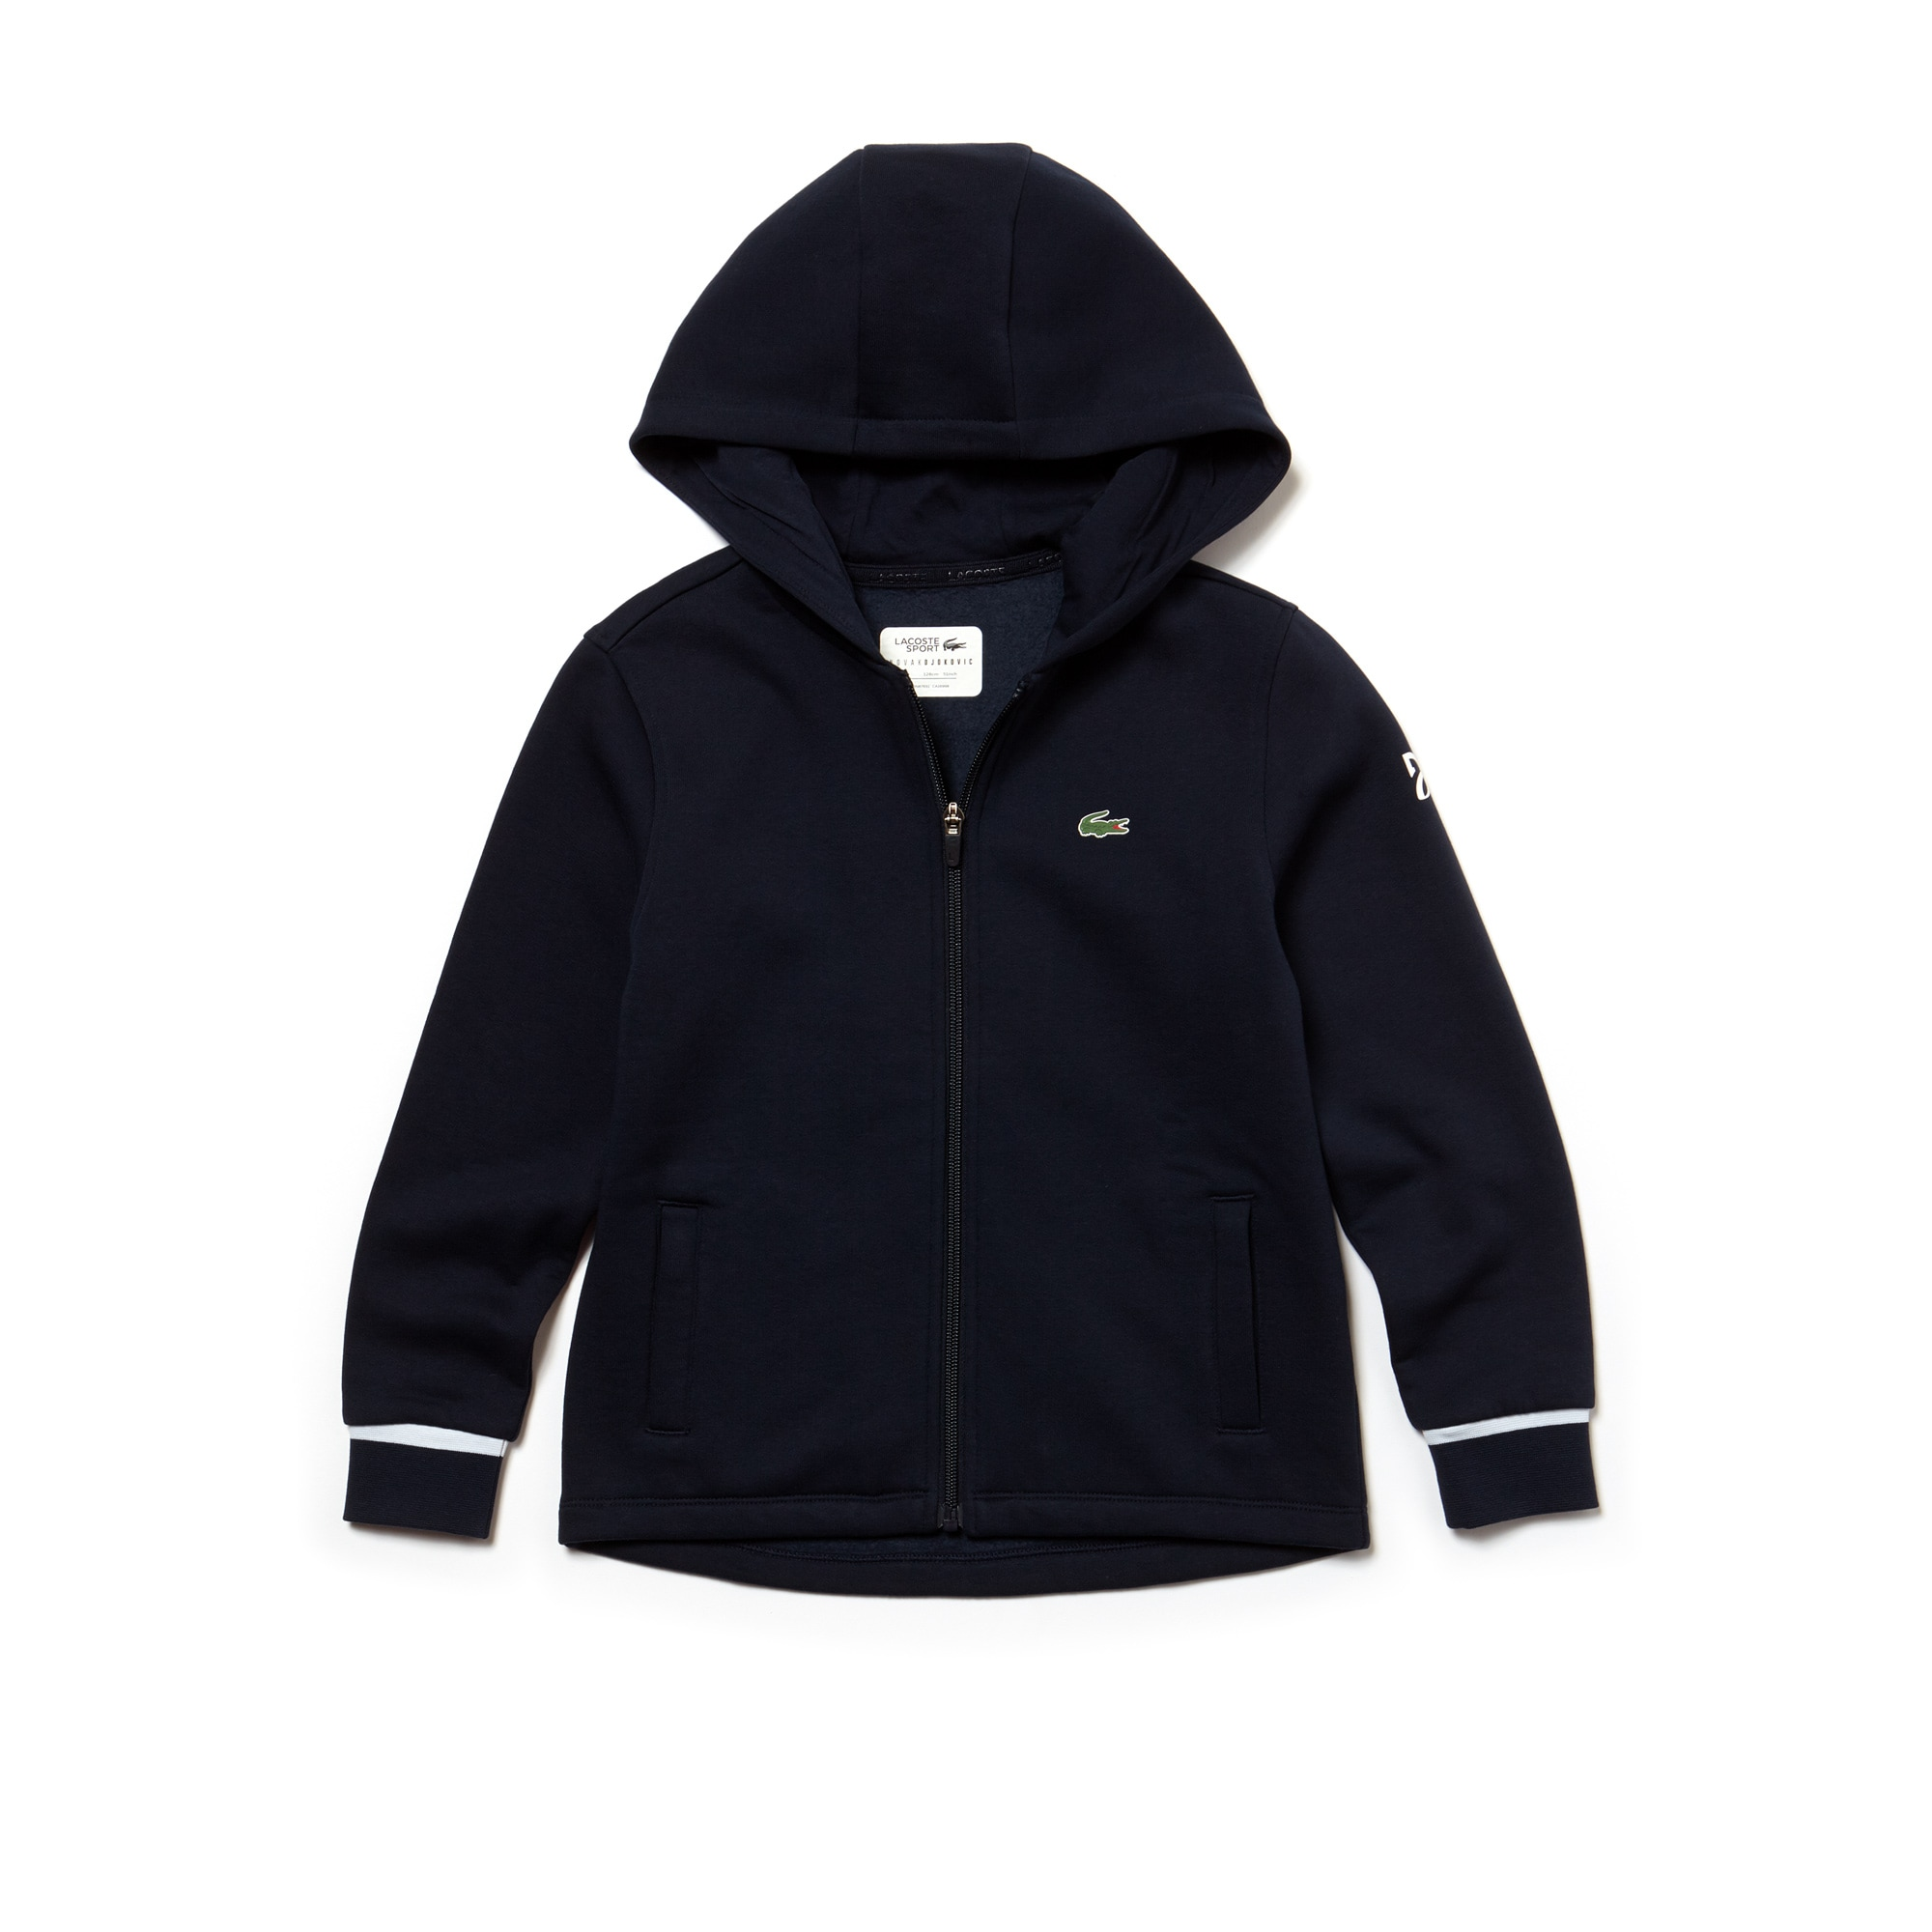 Boys' SPORT Hooded Sweatshirt - Novak Djokovic Supporter Collection